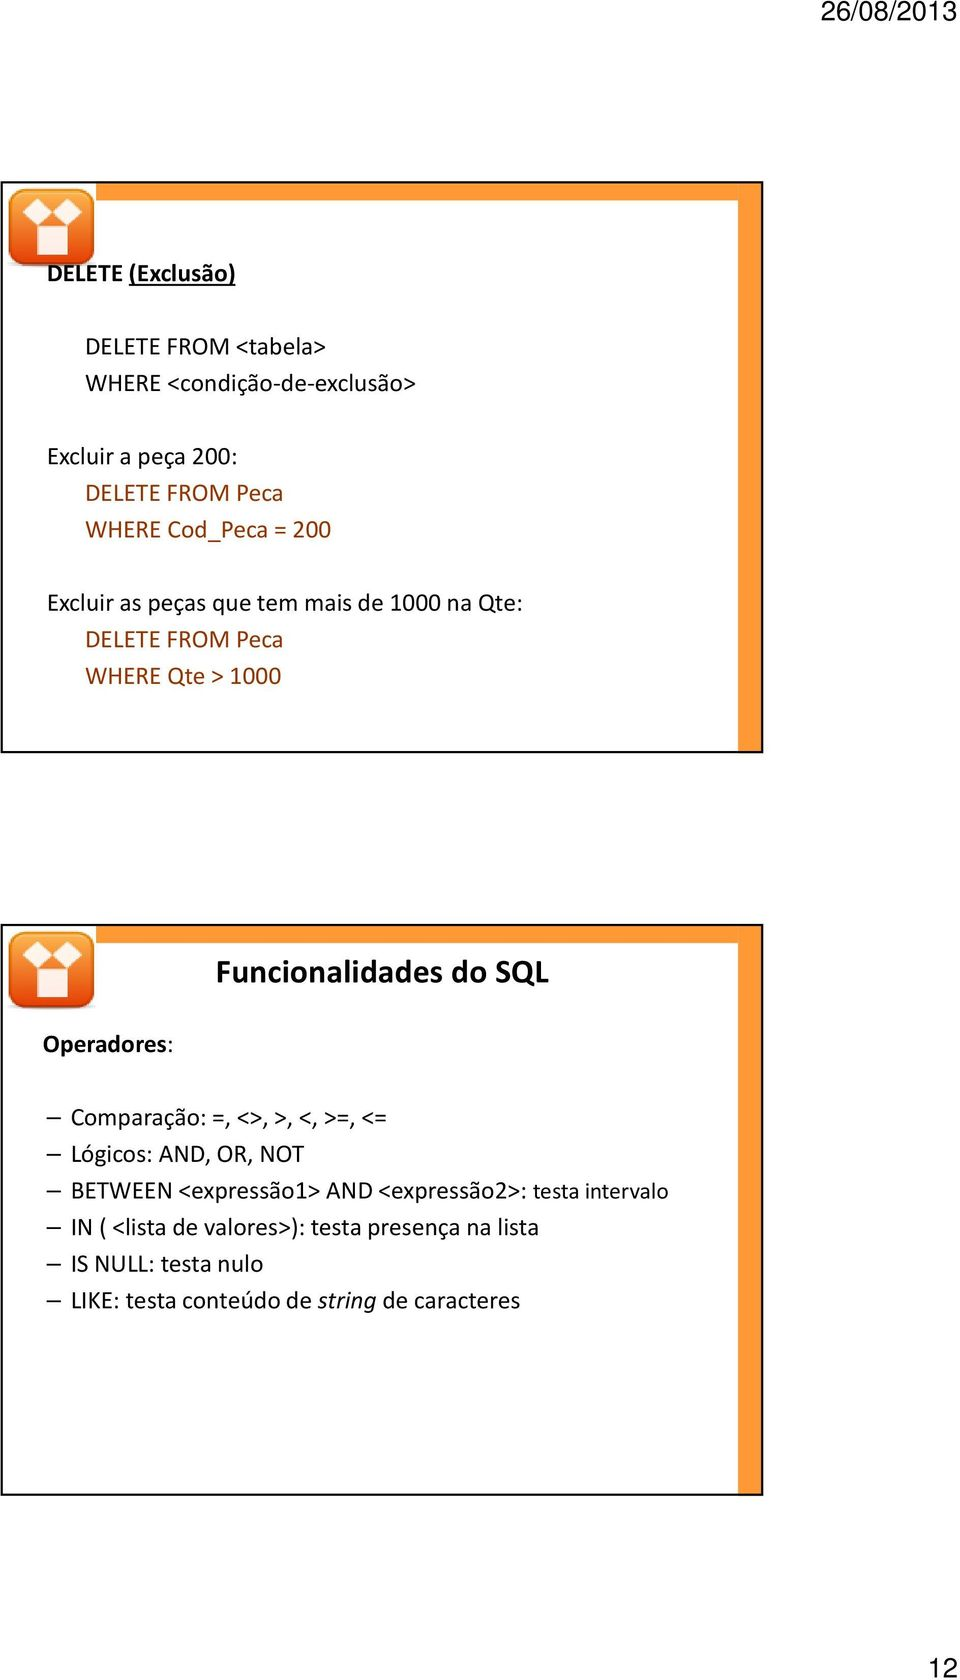 Funcionalidades do SQL Comparação: =, <>, >, <, >=, <= Lógicos: AND, OR, NOT BETWEEN <expressão1> AND <expressão2>: